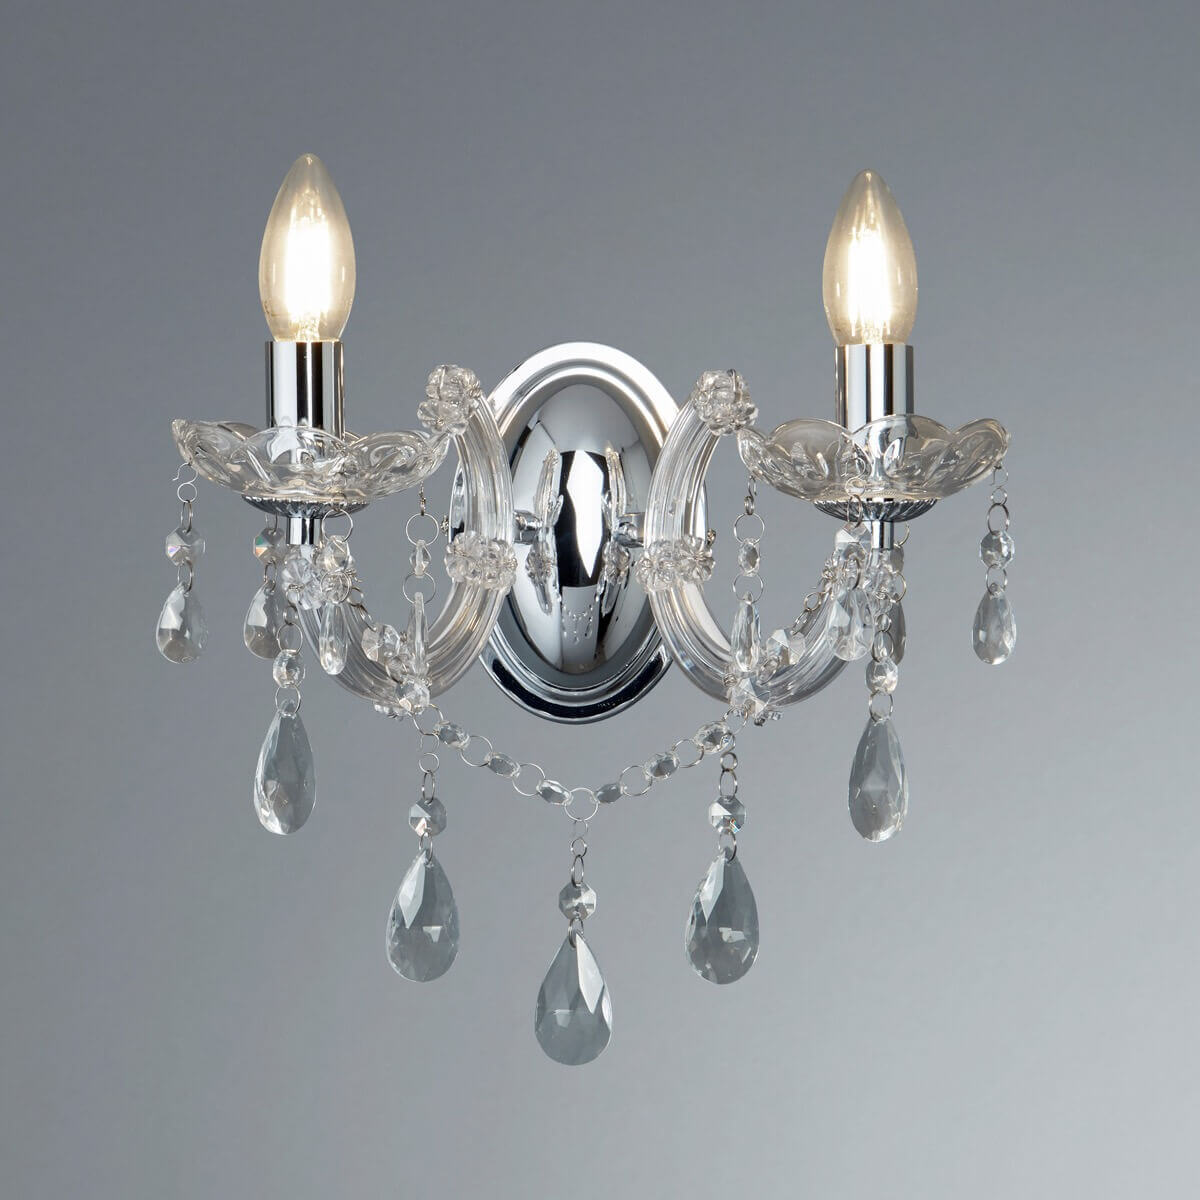 2 Light Marie Therese Crystal Chrome Wall Bracket